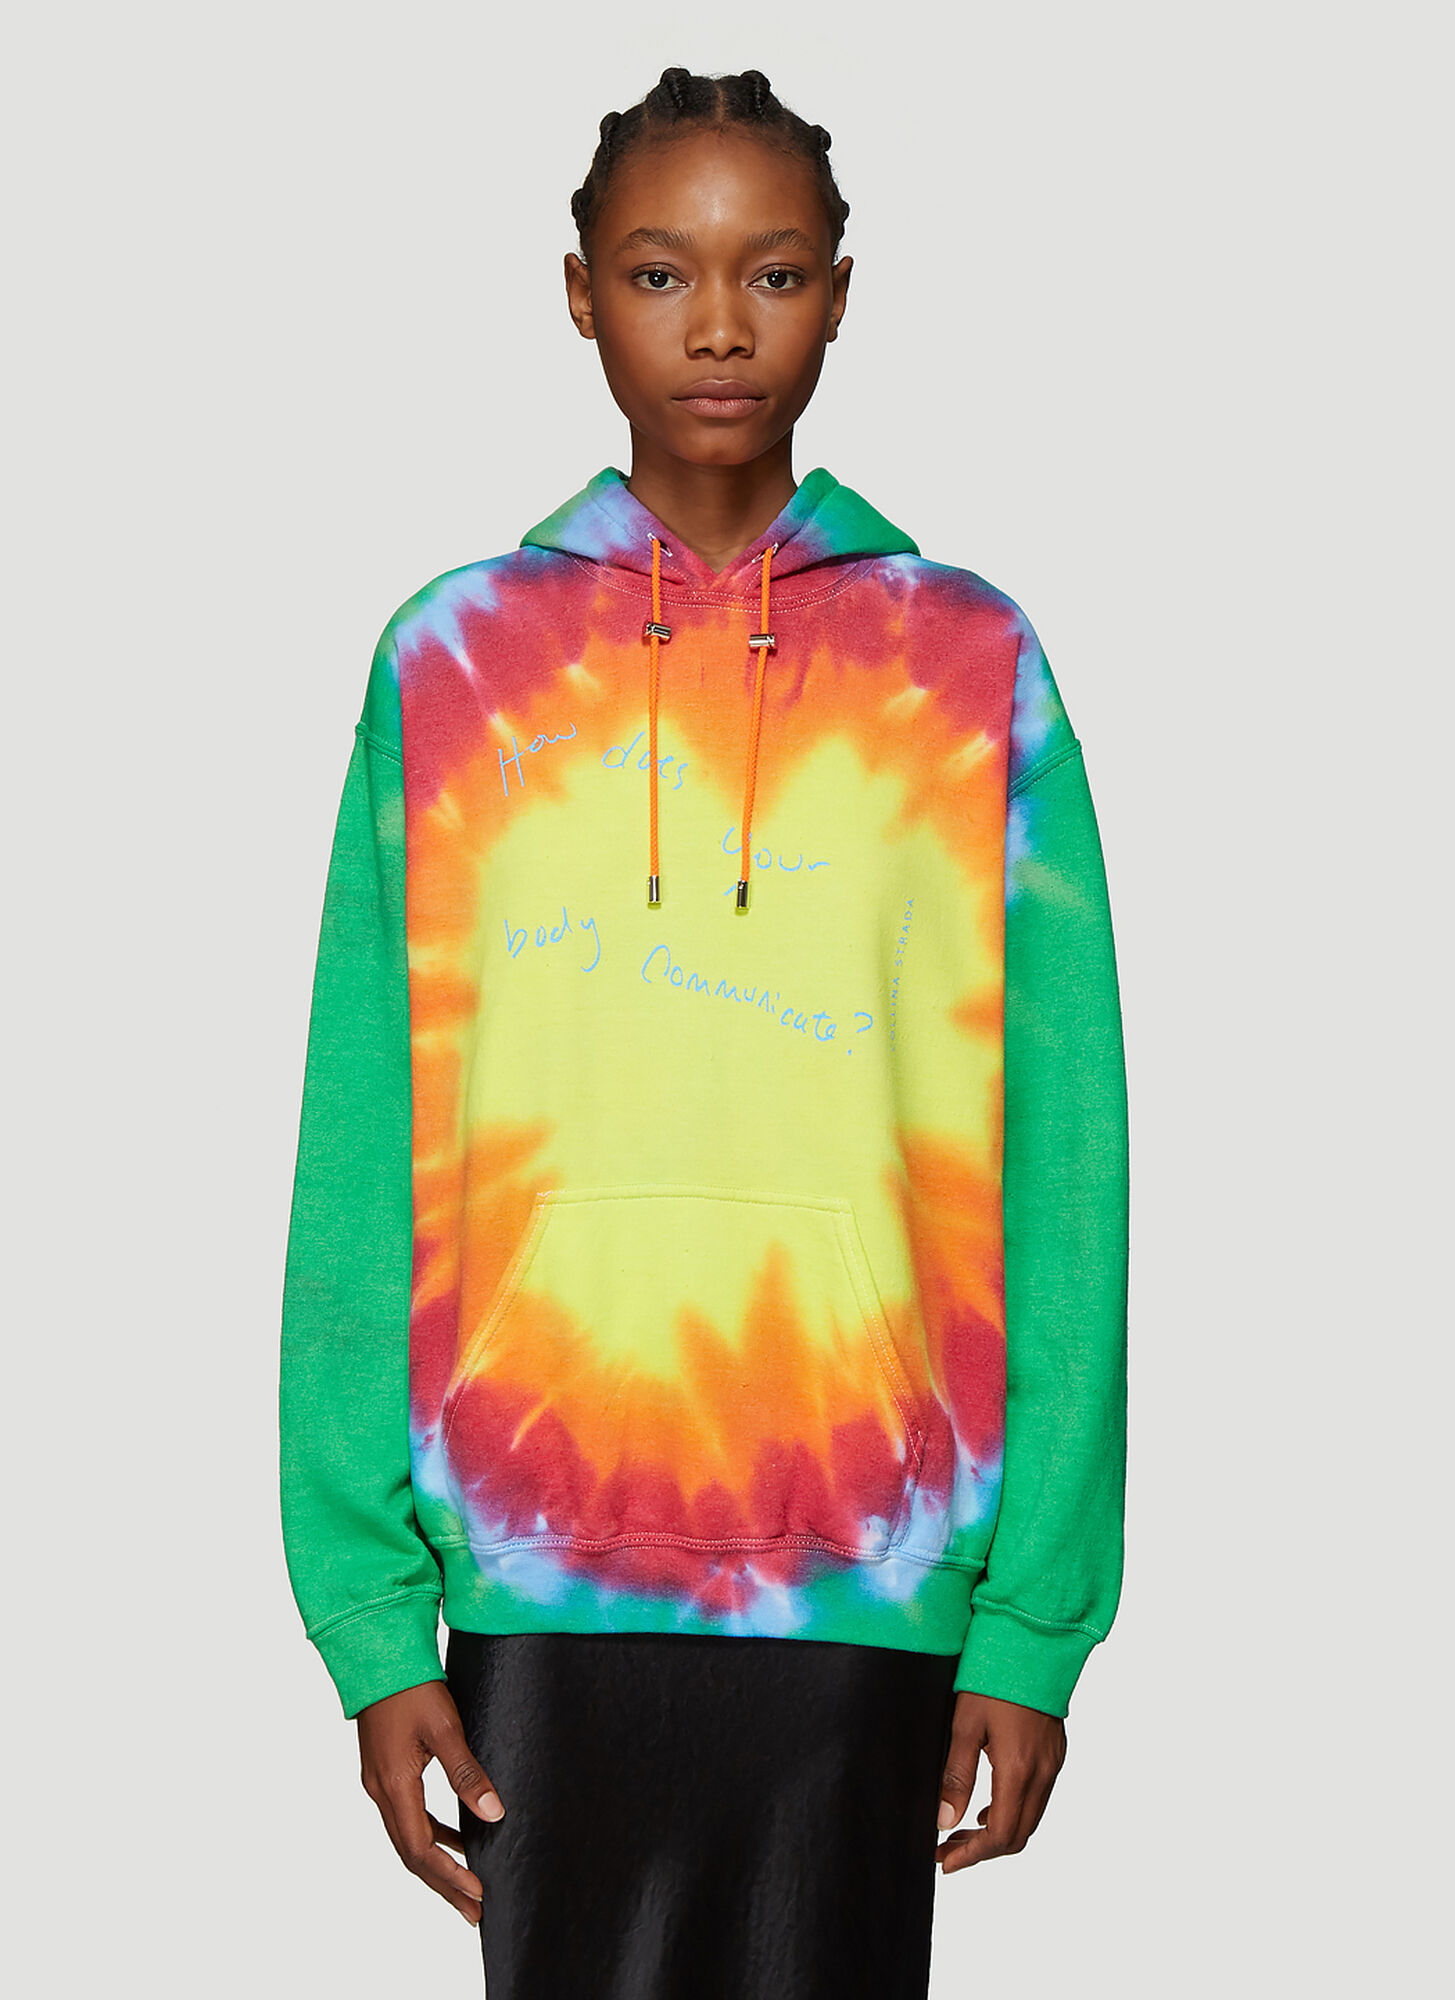 Collina Strada Tie Dye Body Communicate Hooded Sweatshirt in Orange